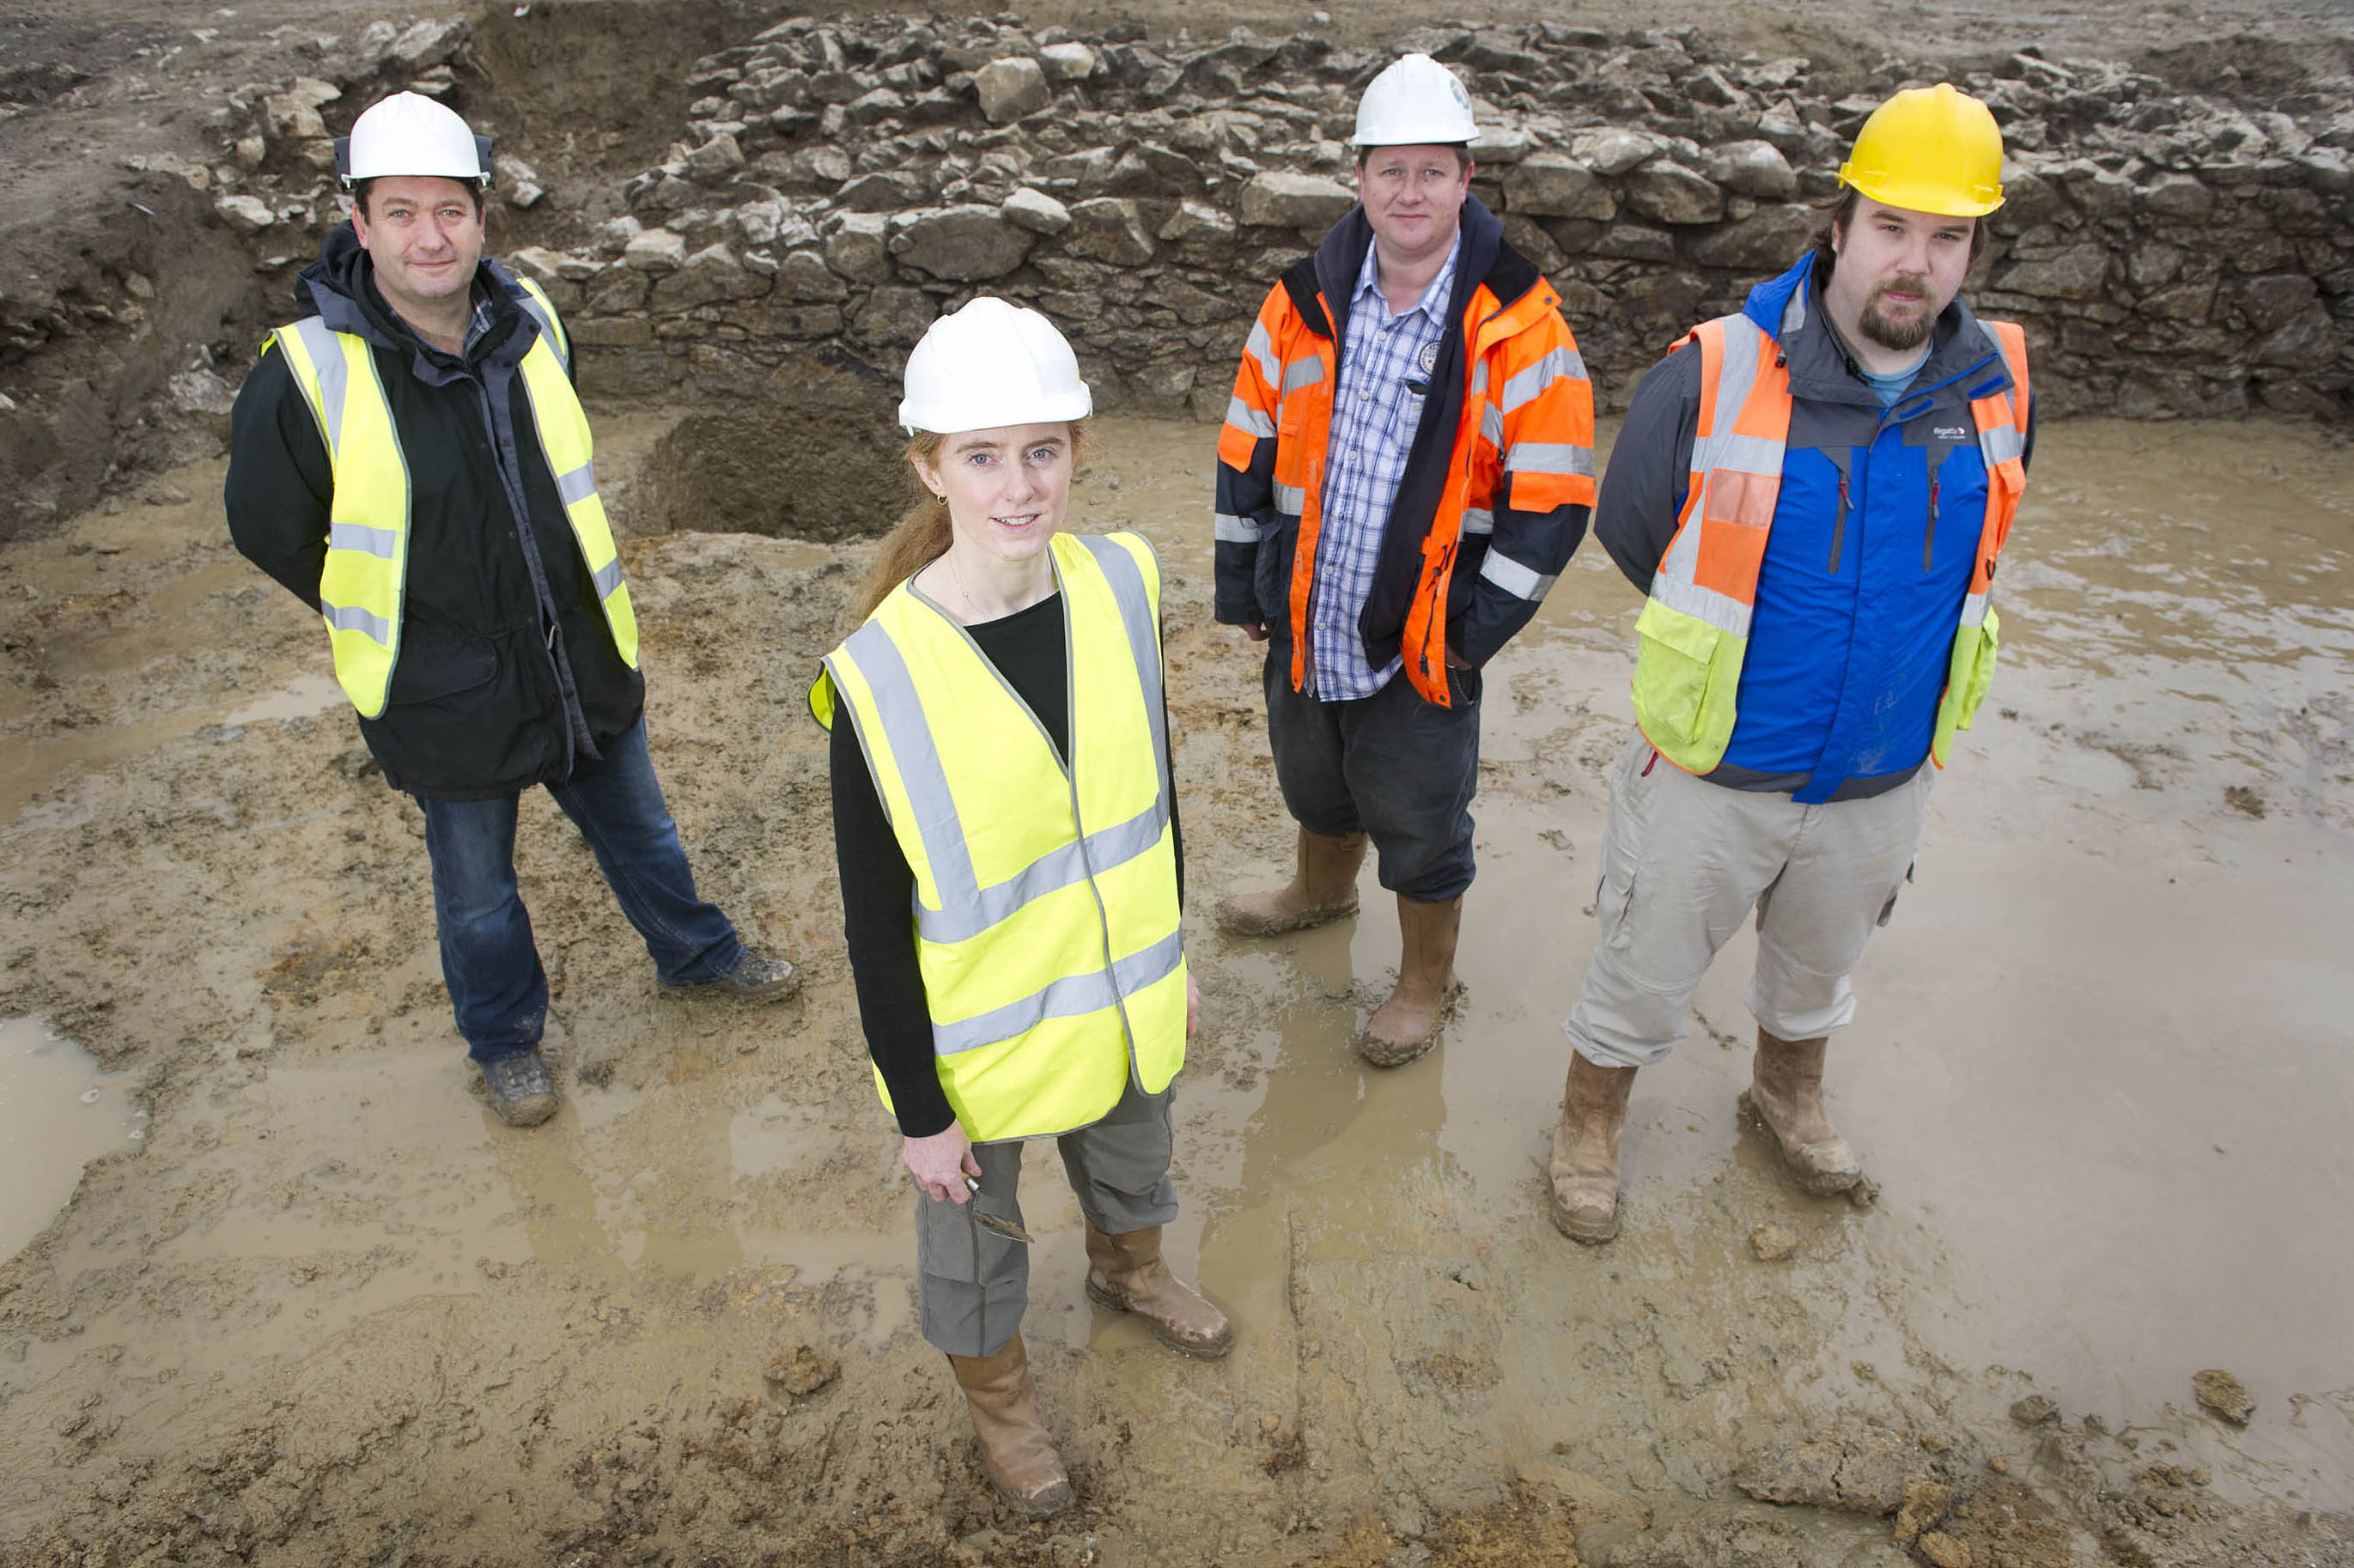 Shareholders of Rubicon Heritage Services Ltd (l-r) Colm Moloney, Louise Baker, Ross MacLeod & Damian Shiels